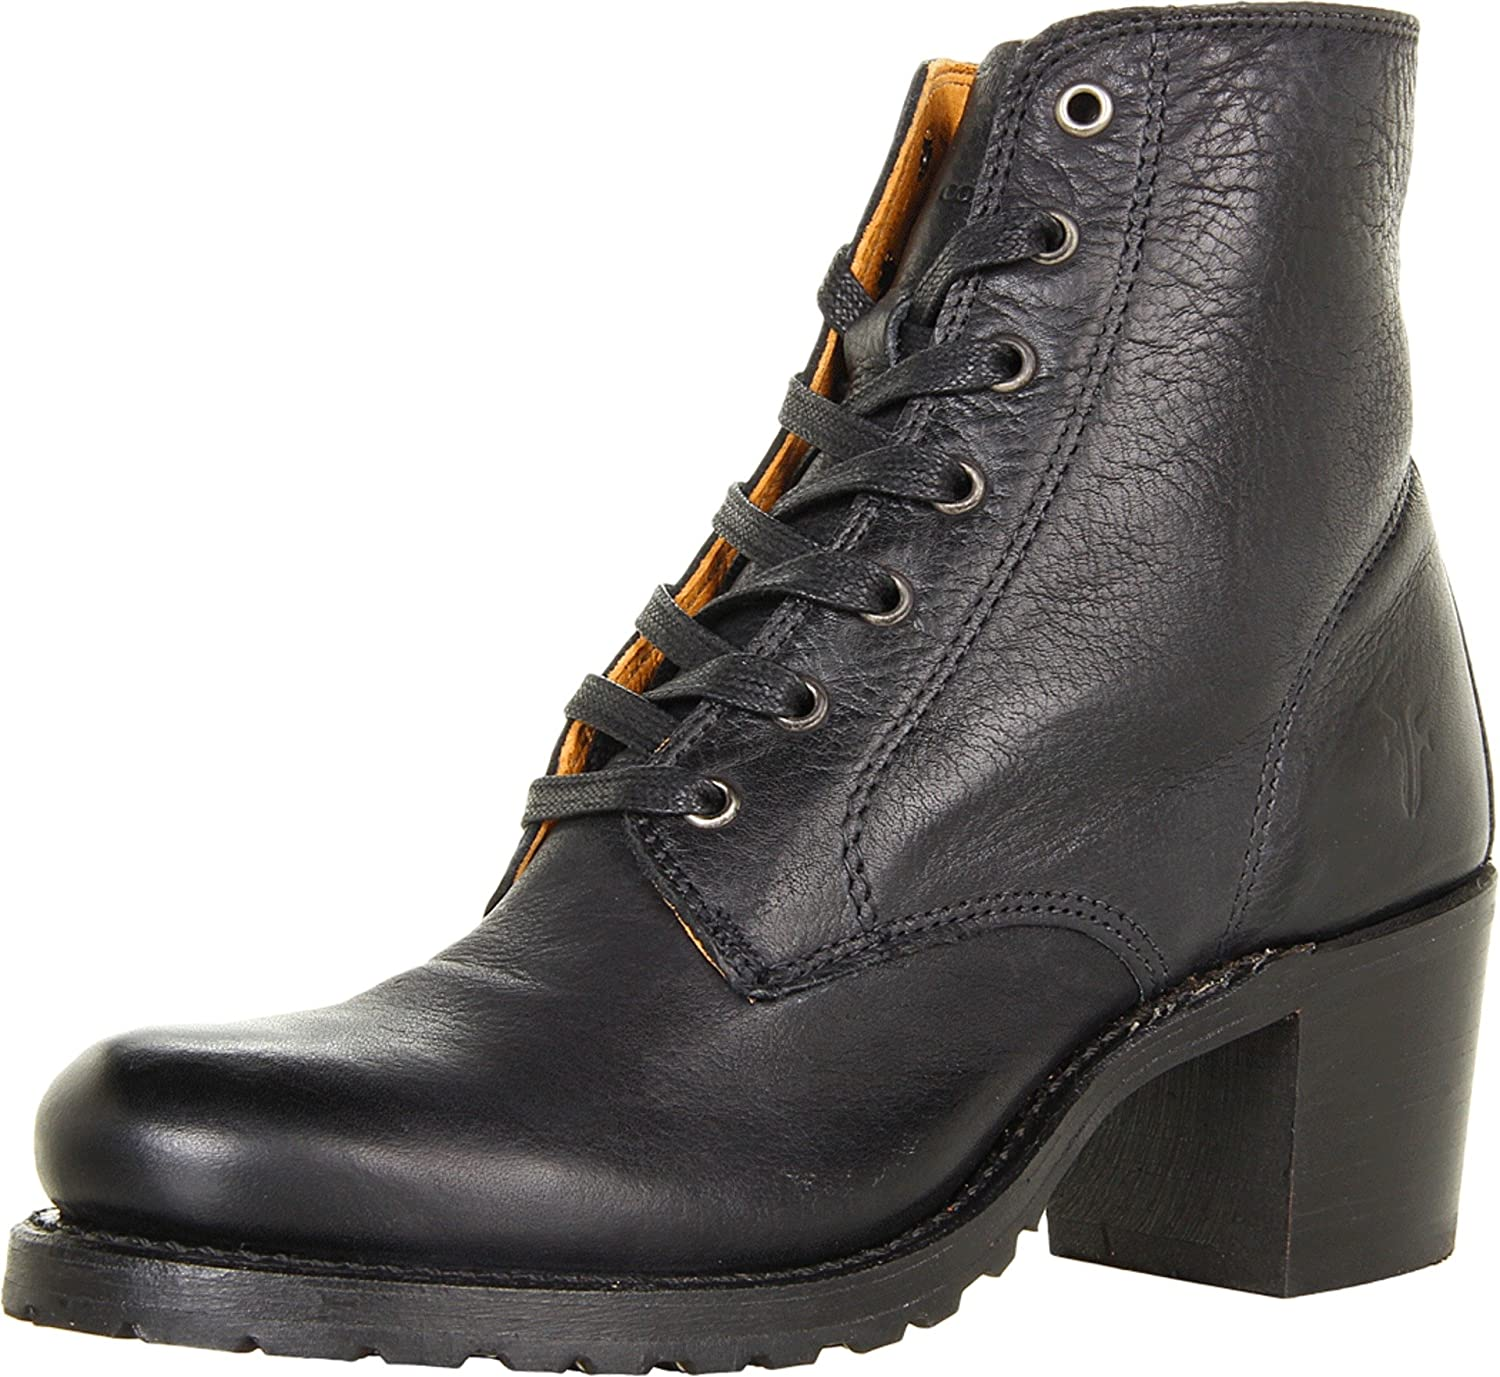 FRYE Women's Sabrina 6G Lace-Up Boot B006O00LYA 8.5 B(M) US|Black Dakota Leather-77201